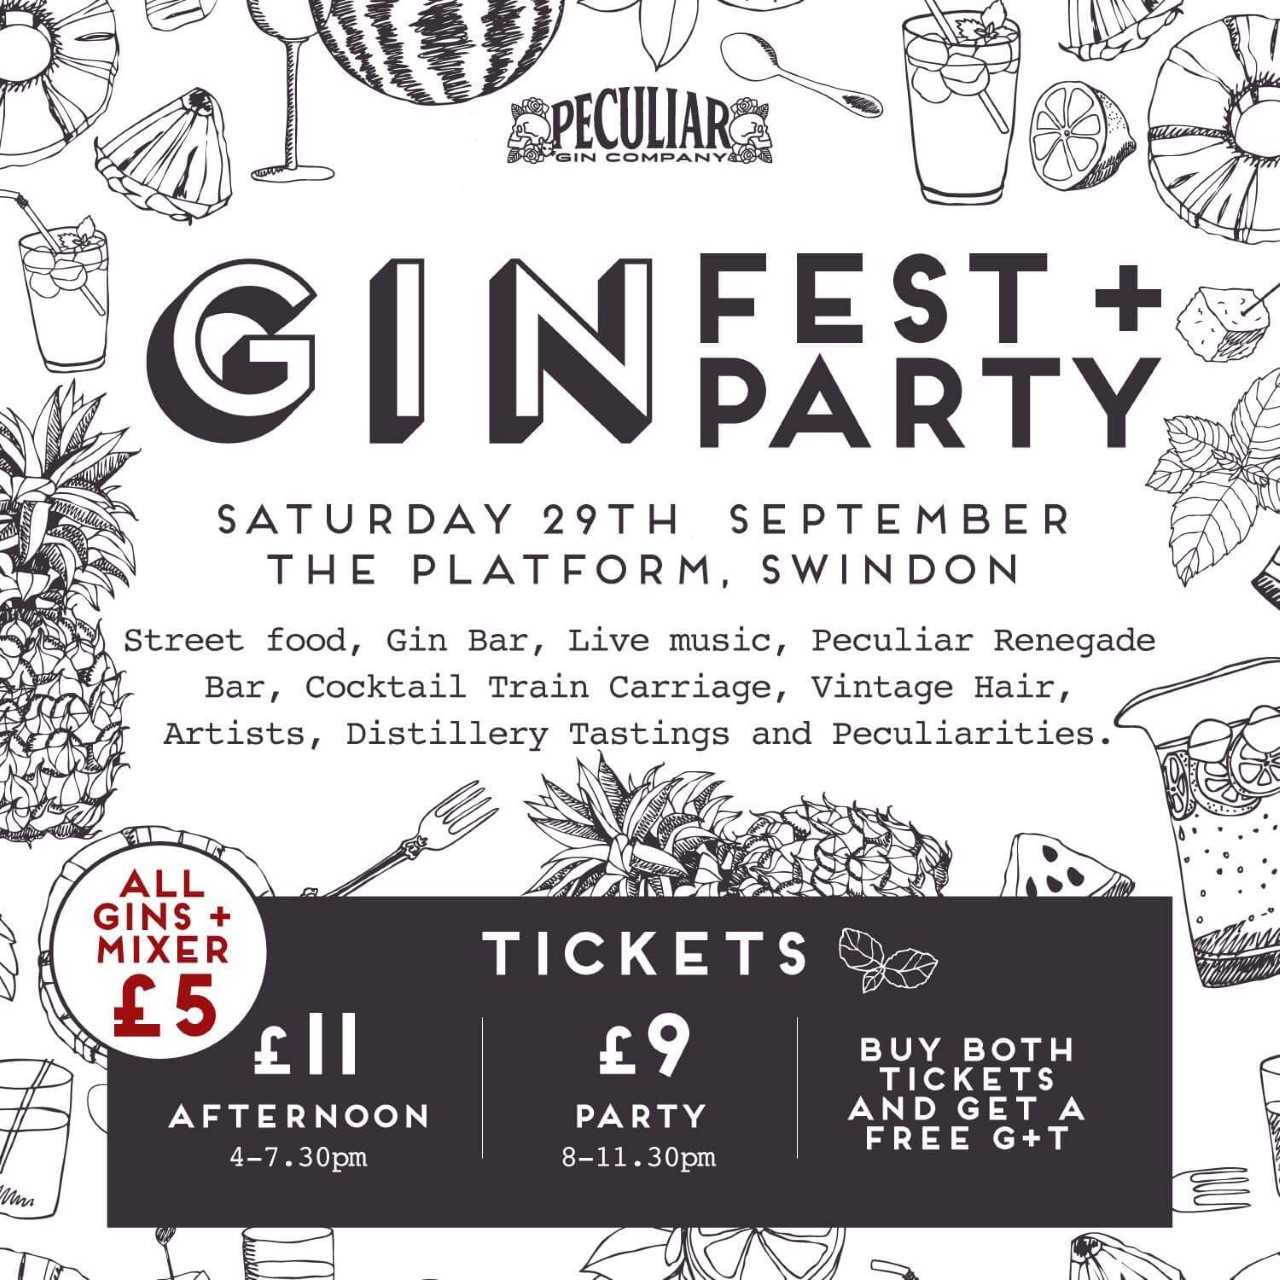 Peculiar Gin Festival and Gin Party